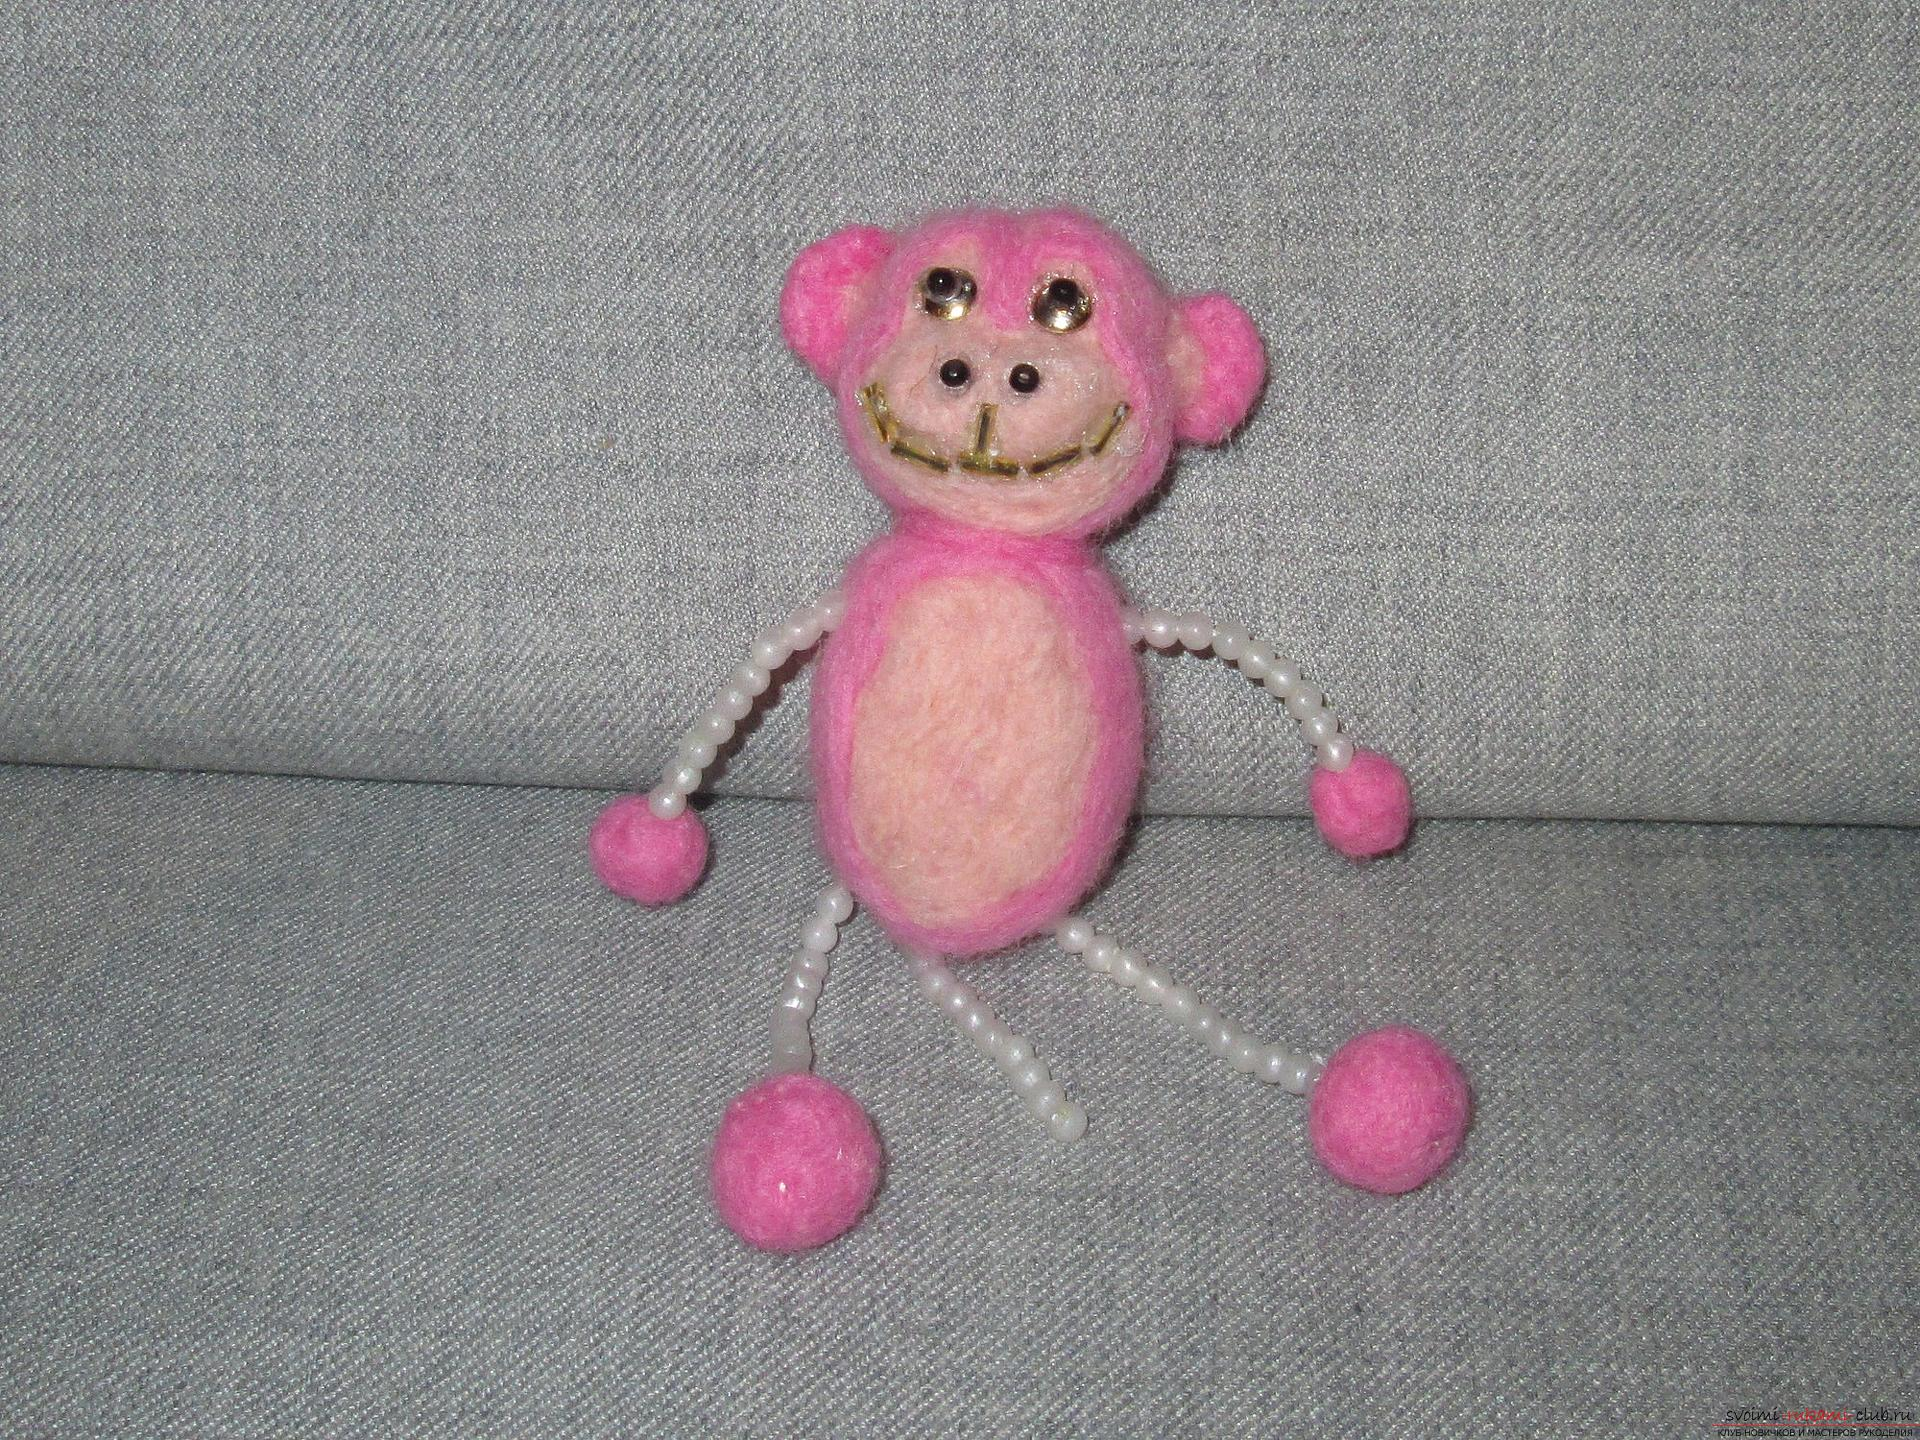 This master class felting out of wool will help make a toy monkey with your own hands. Photo # 24